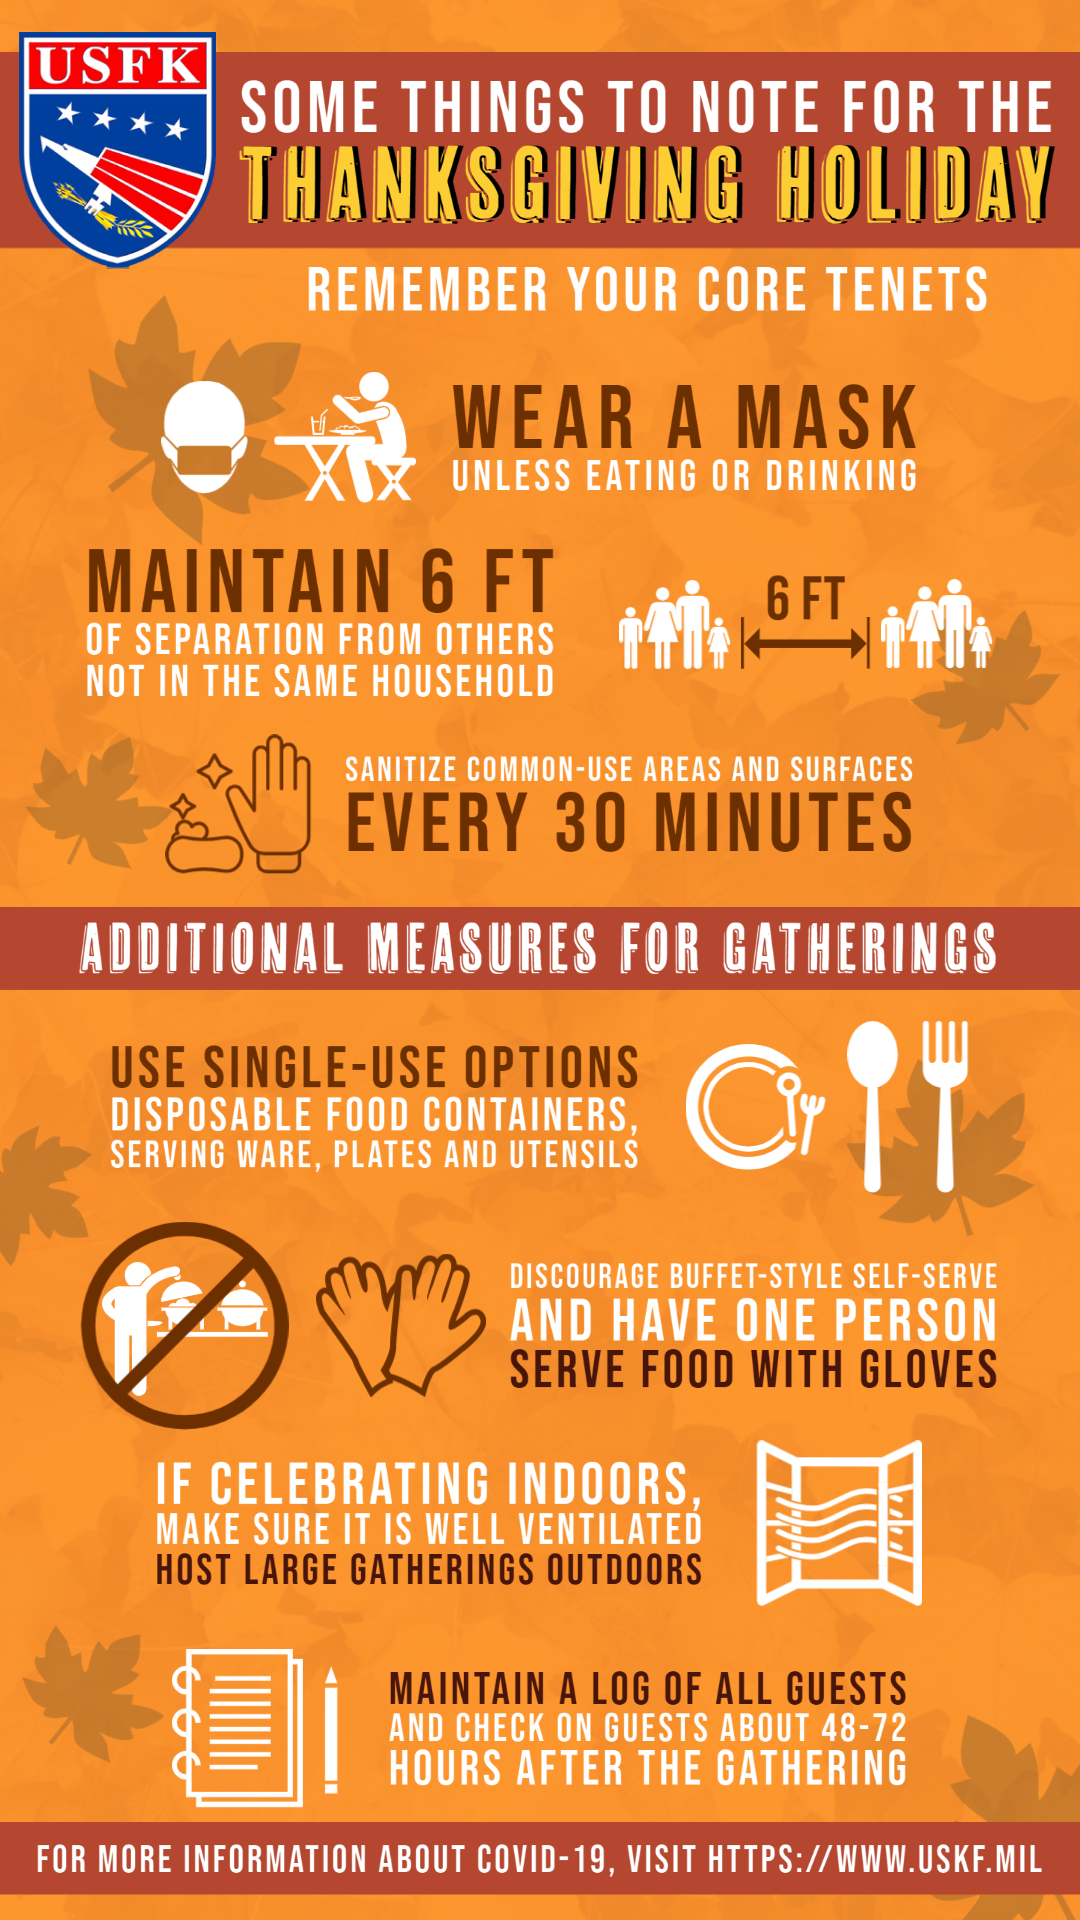 Some things to note for the Thanksgiving Holiday. Remember your core tenets. Wear a mask unless eating or drinking. Maintain 6 feet of separation from others not in the same household. Sanitize common-use areas and surfaces every 30 minutes. Additional measures for gatherings include: use single-use options such as disposable food containers, serving ware, plates and utensils; discourage buffet-style self-serve and have one more serve food with gloves; if celebrating indoors, make sure it is well ventilated; host large gatherings outdoors; and 1maintain a log of all guests and check on guests about 48-72 hours after the gathering.